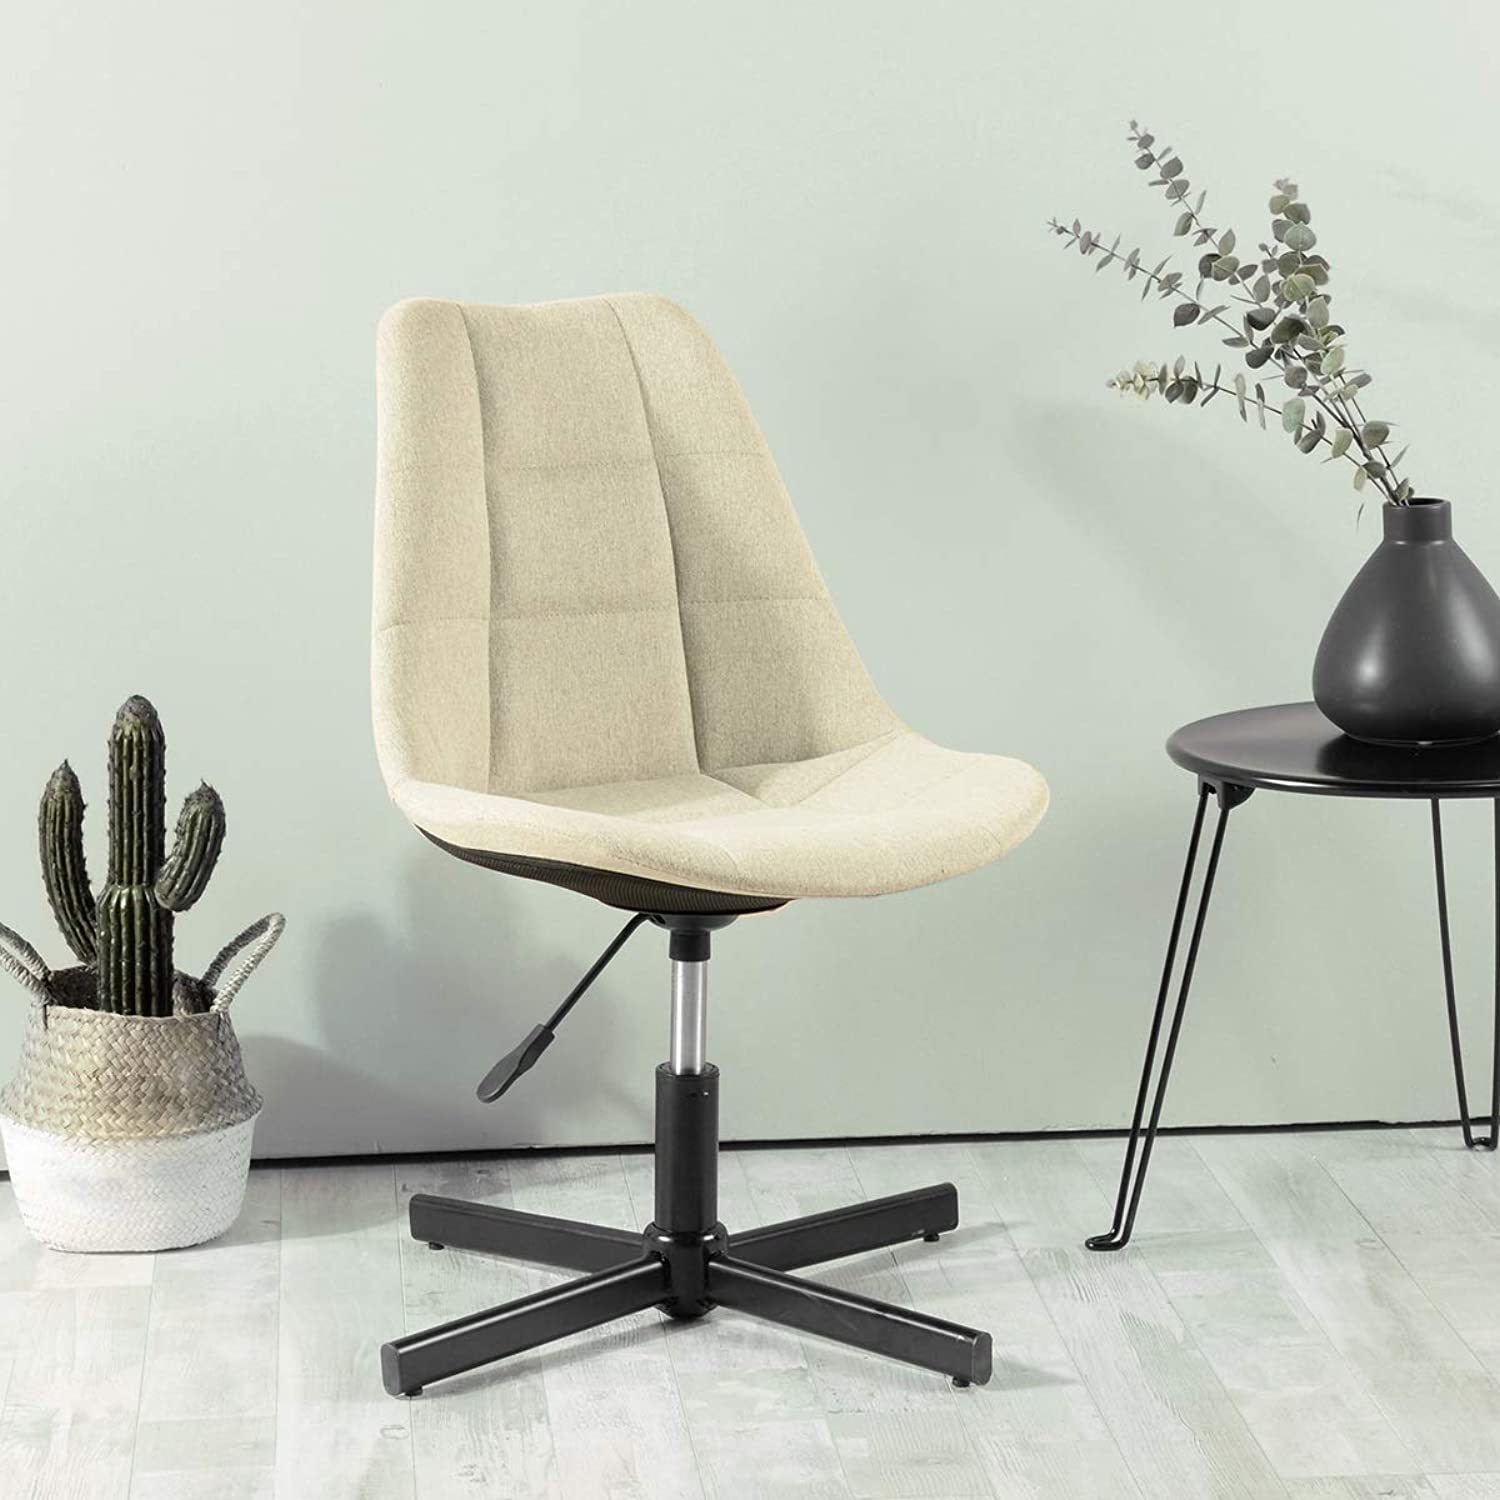 Adjustable Task Office Tub Chair Black Metal Base Leg (Beige Fabric)